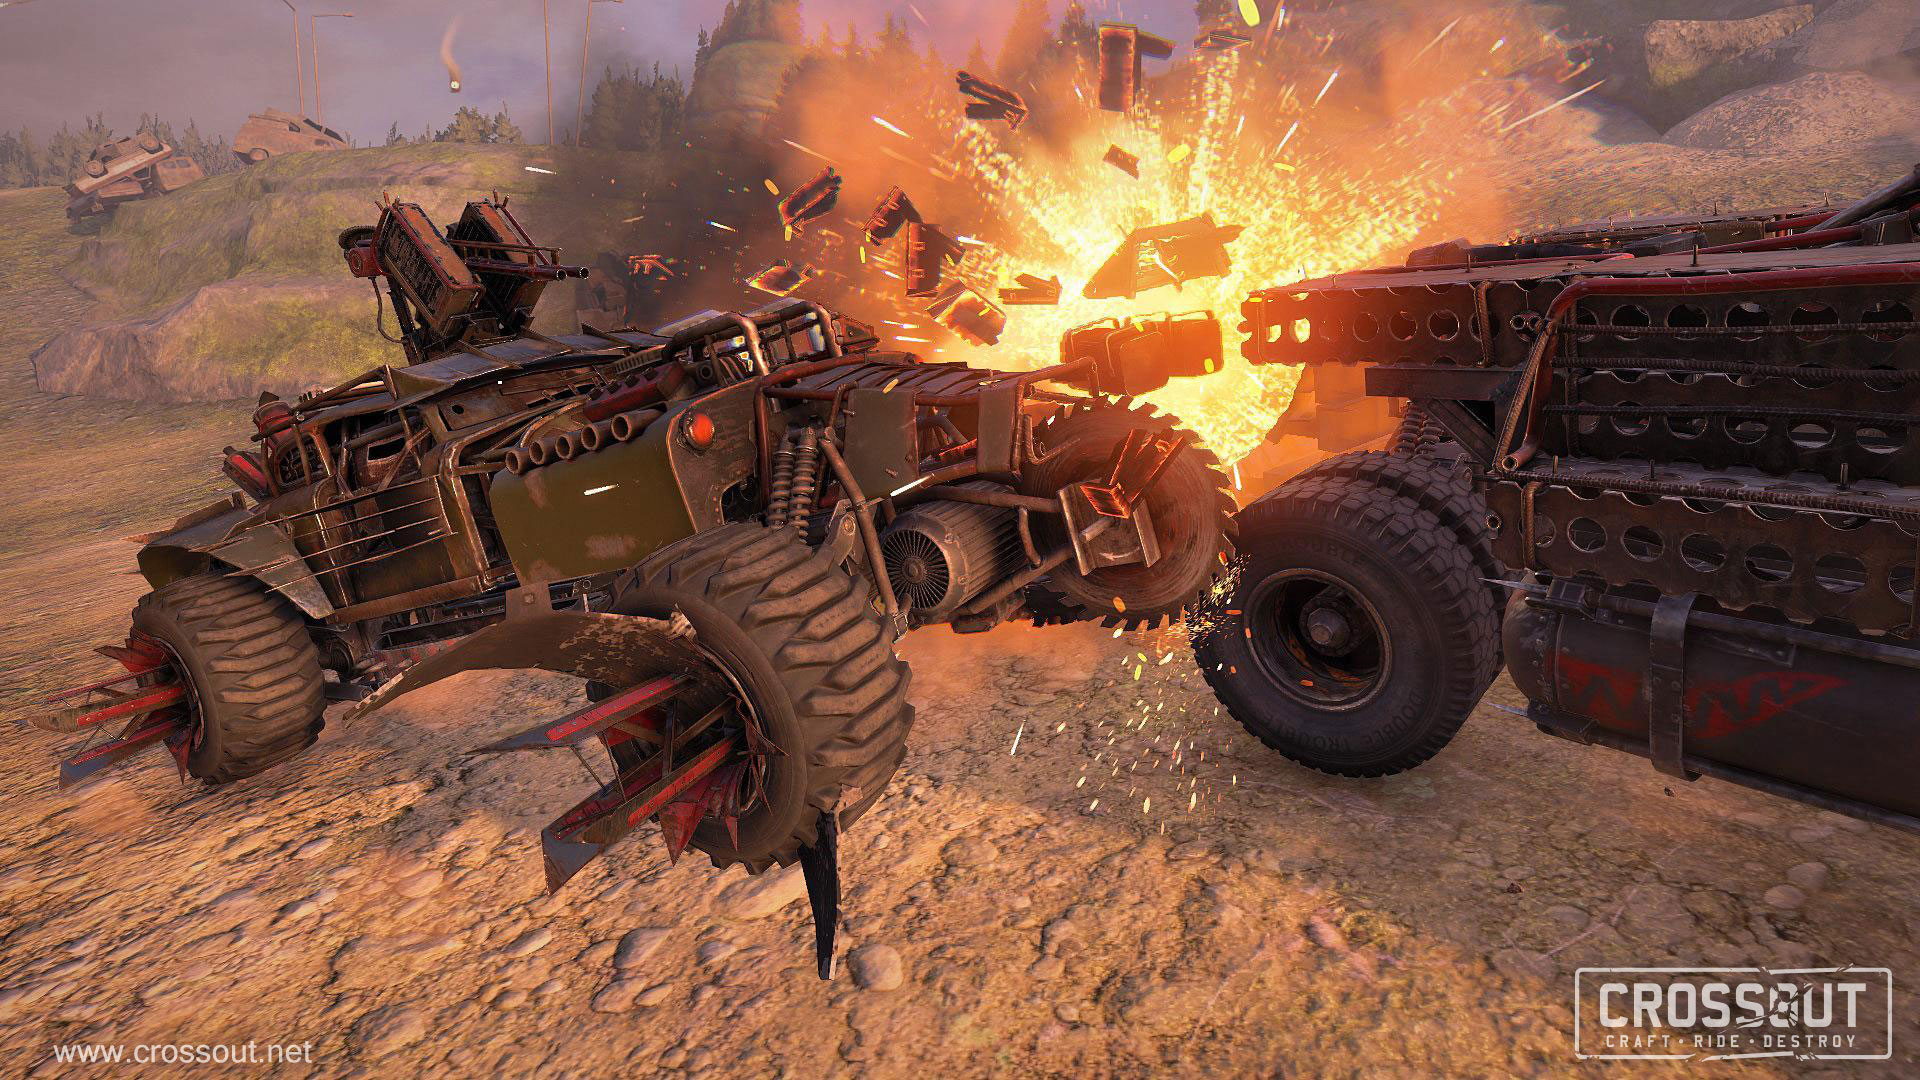 Crossout_fire_fights_2-1